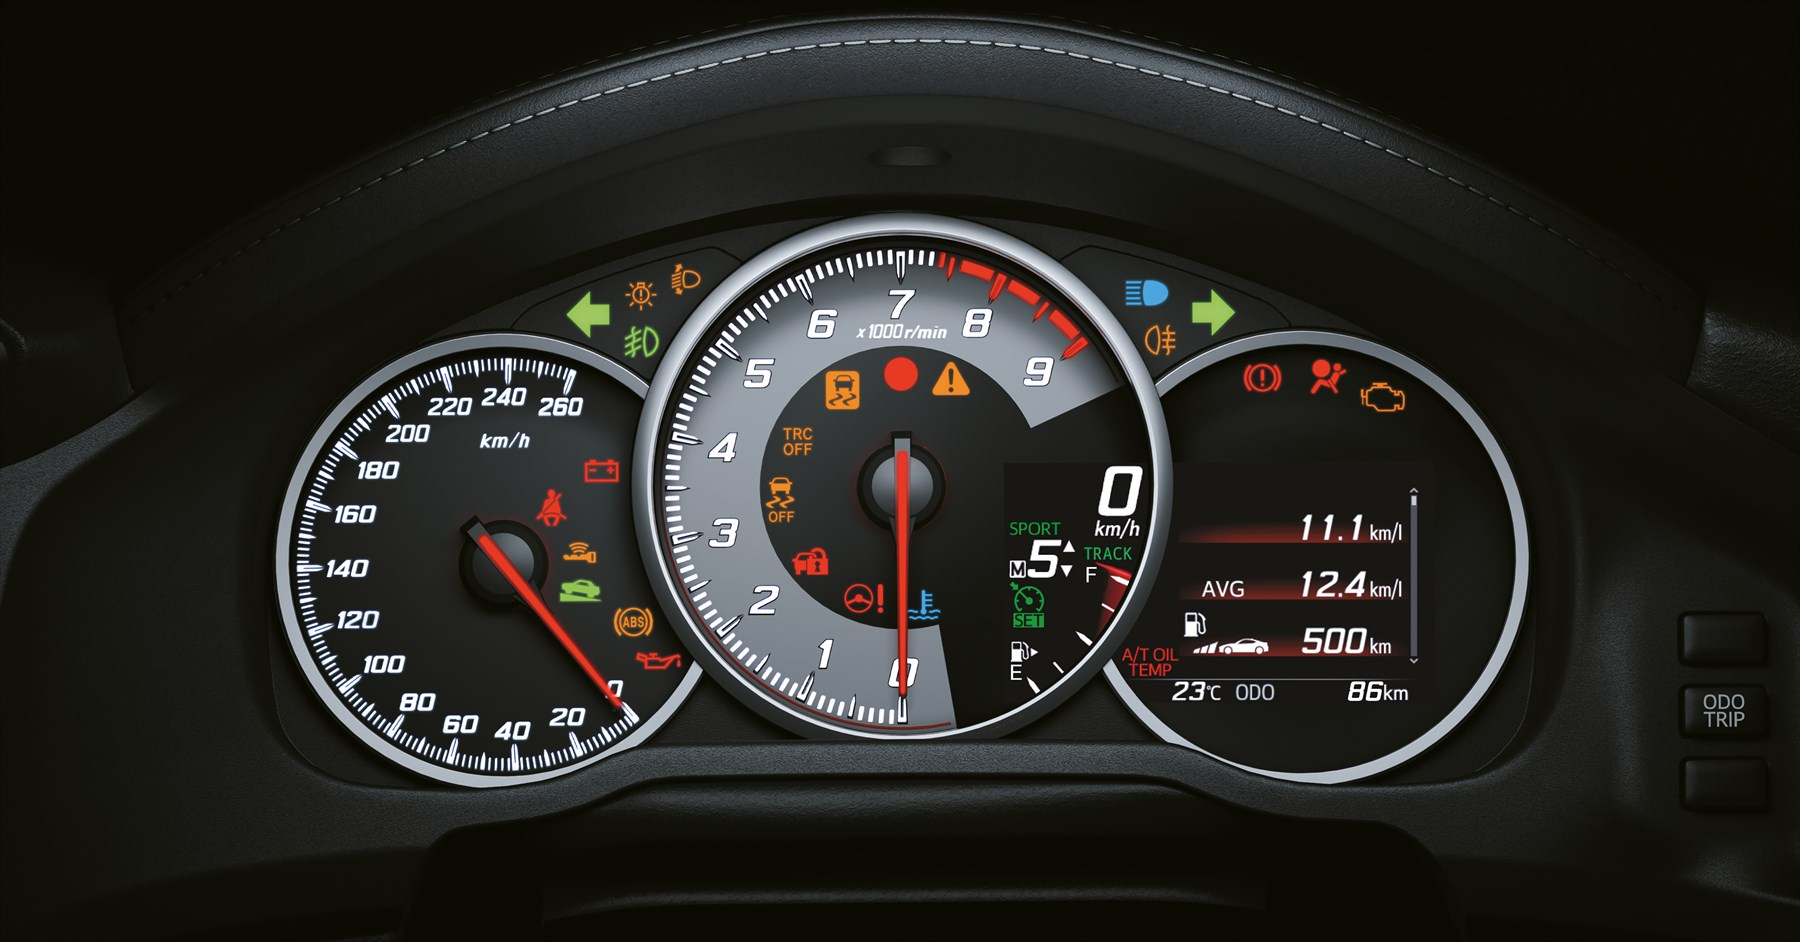 South Coast Acura >> zr6009-d_ret_1800x1800 | Road Safety & Arrive Alive Blog